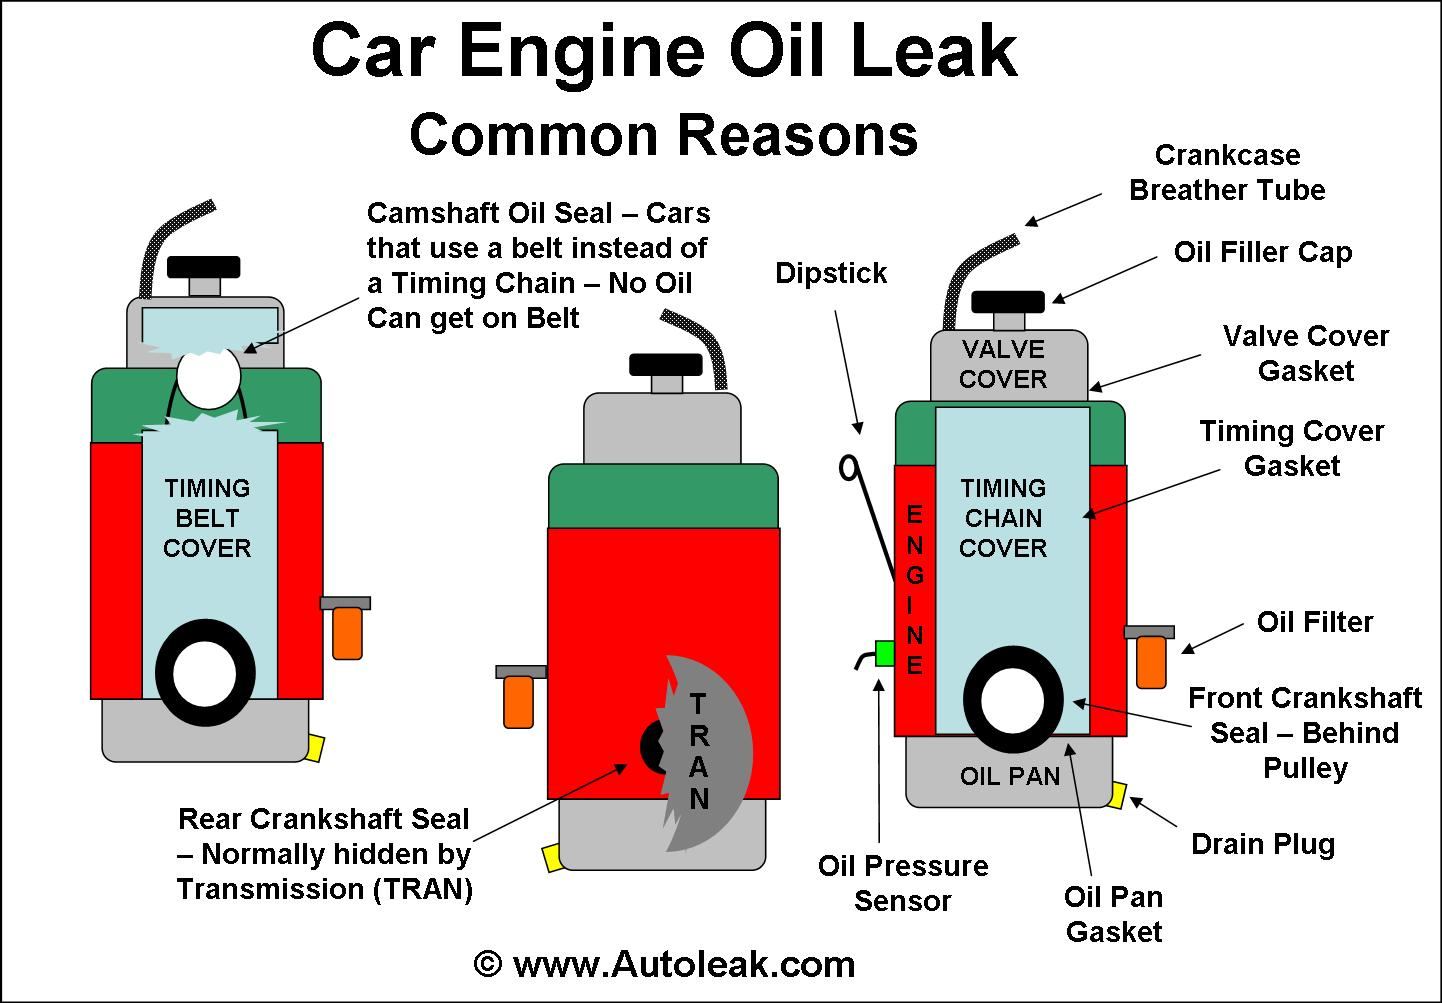 How To Stop A Oil Leak In A Car